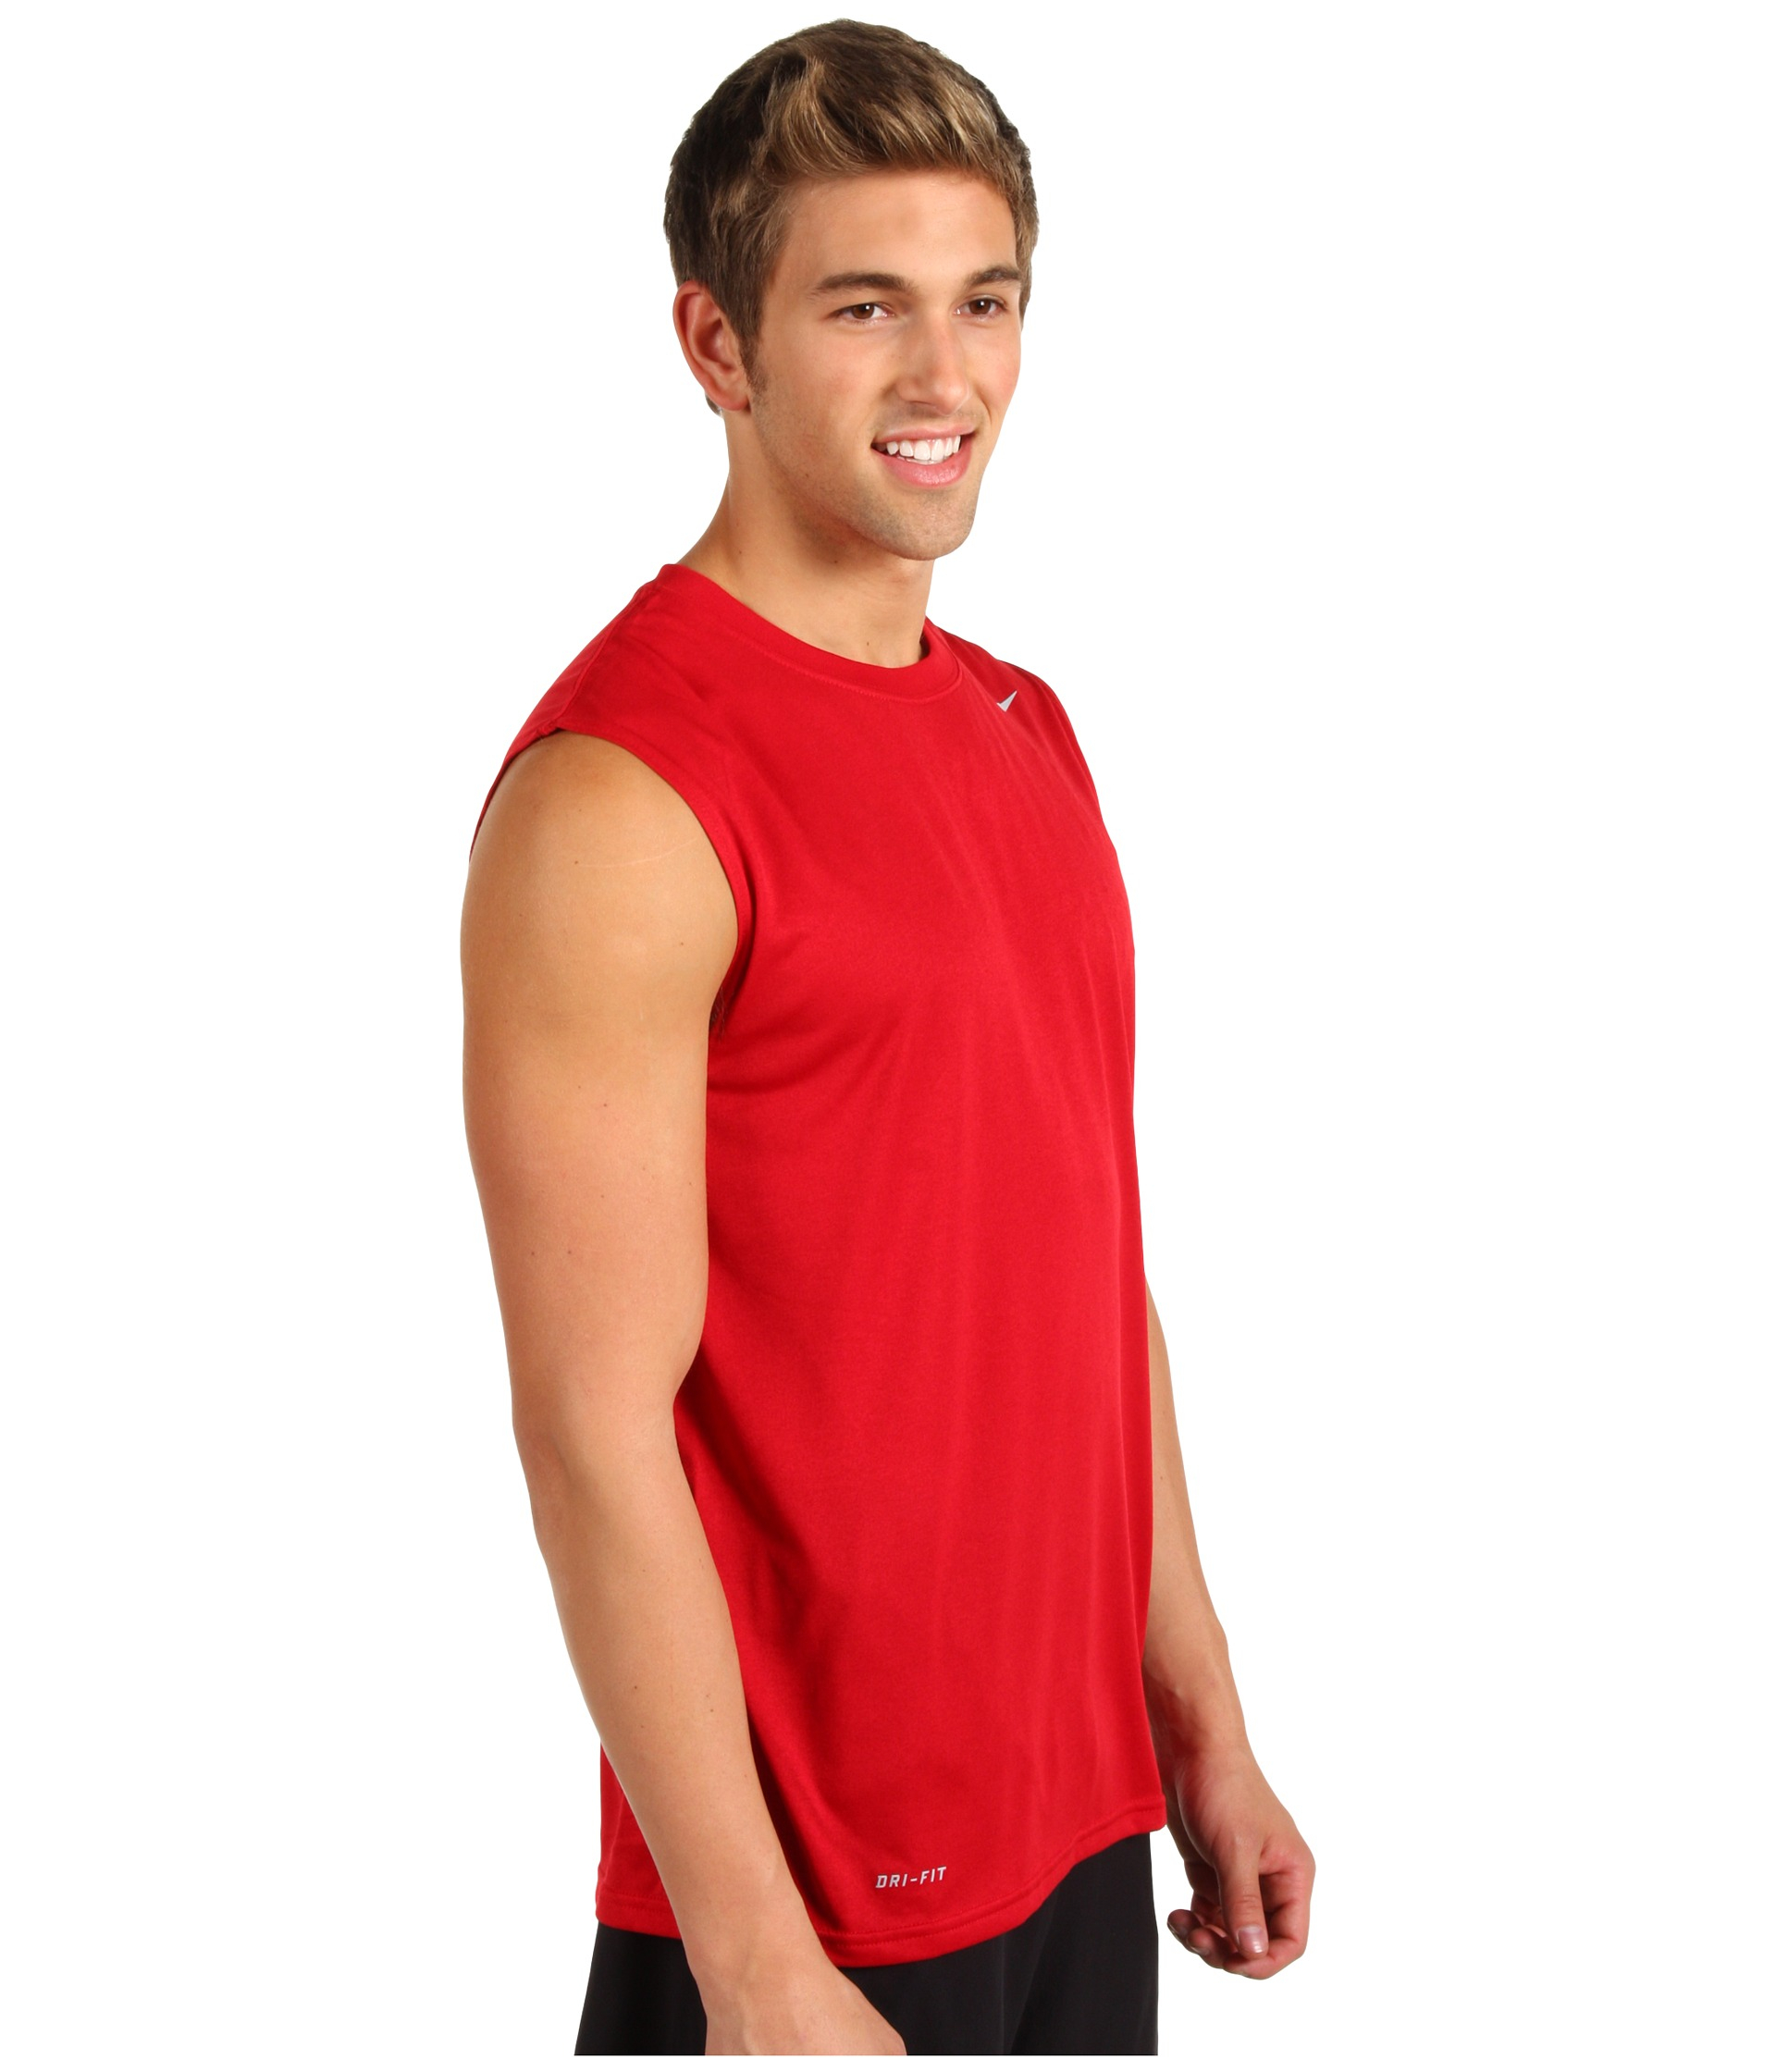 604a6931 Nike Dri-fit Legend Sleeveless Training Shirt in Red for Men - Lyst